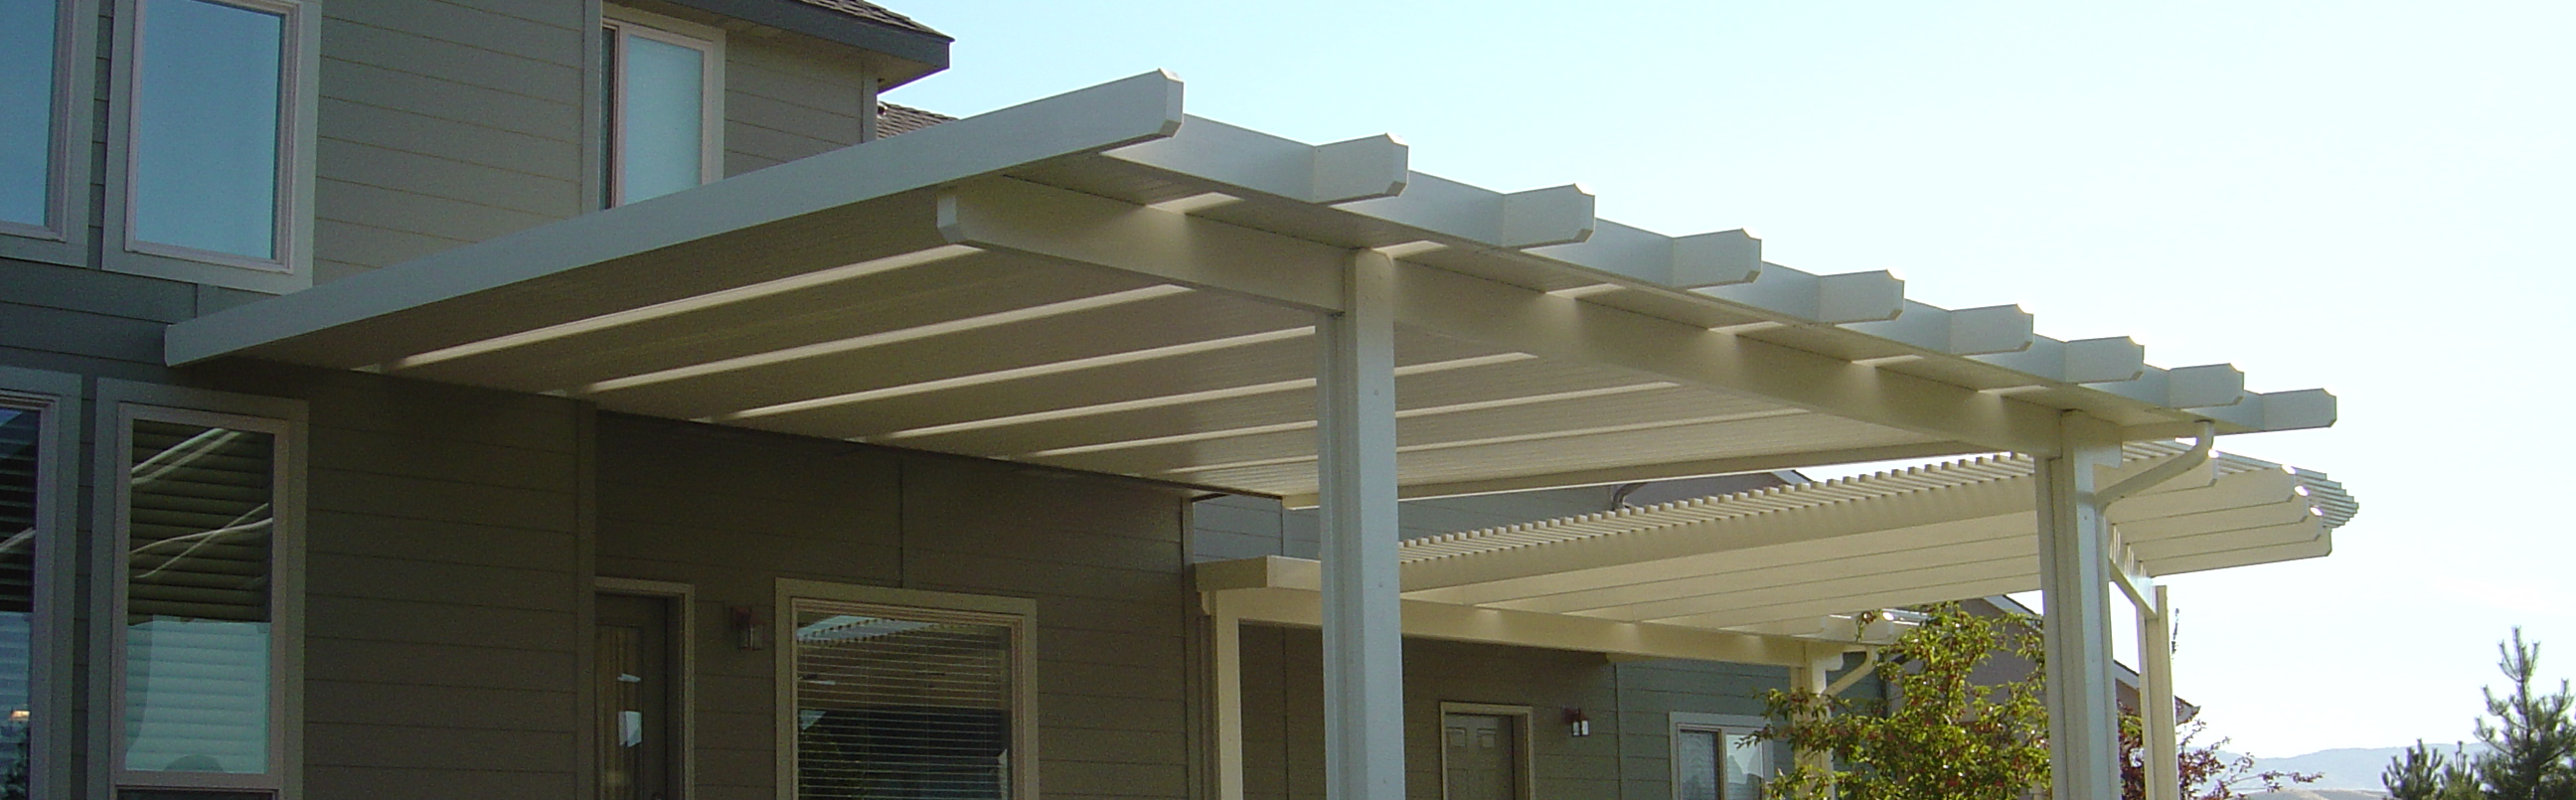 Merveilleux Patio Covers   Sunrooms Enclosures @ Patio Covers Unlimited